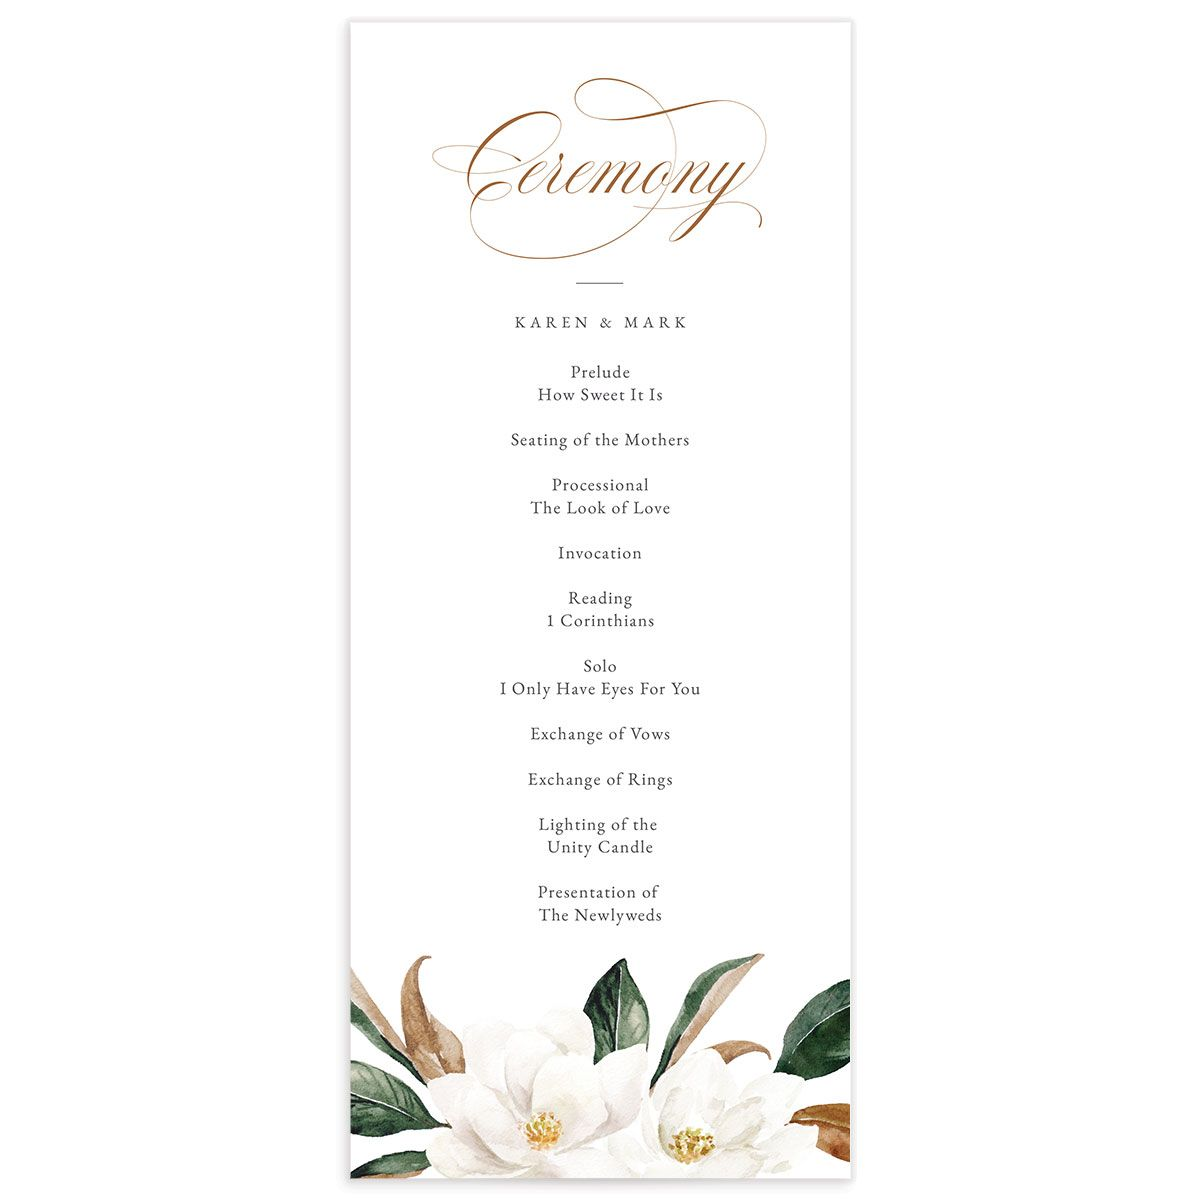 Painted Magnolia Wedding Program front in all colors